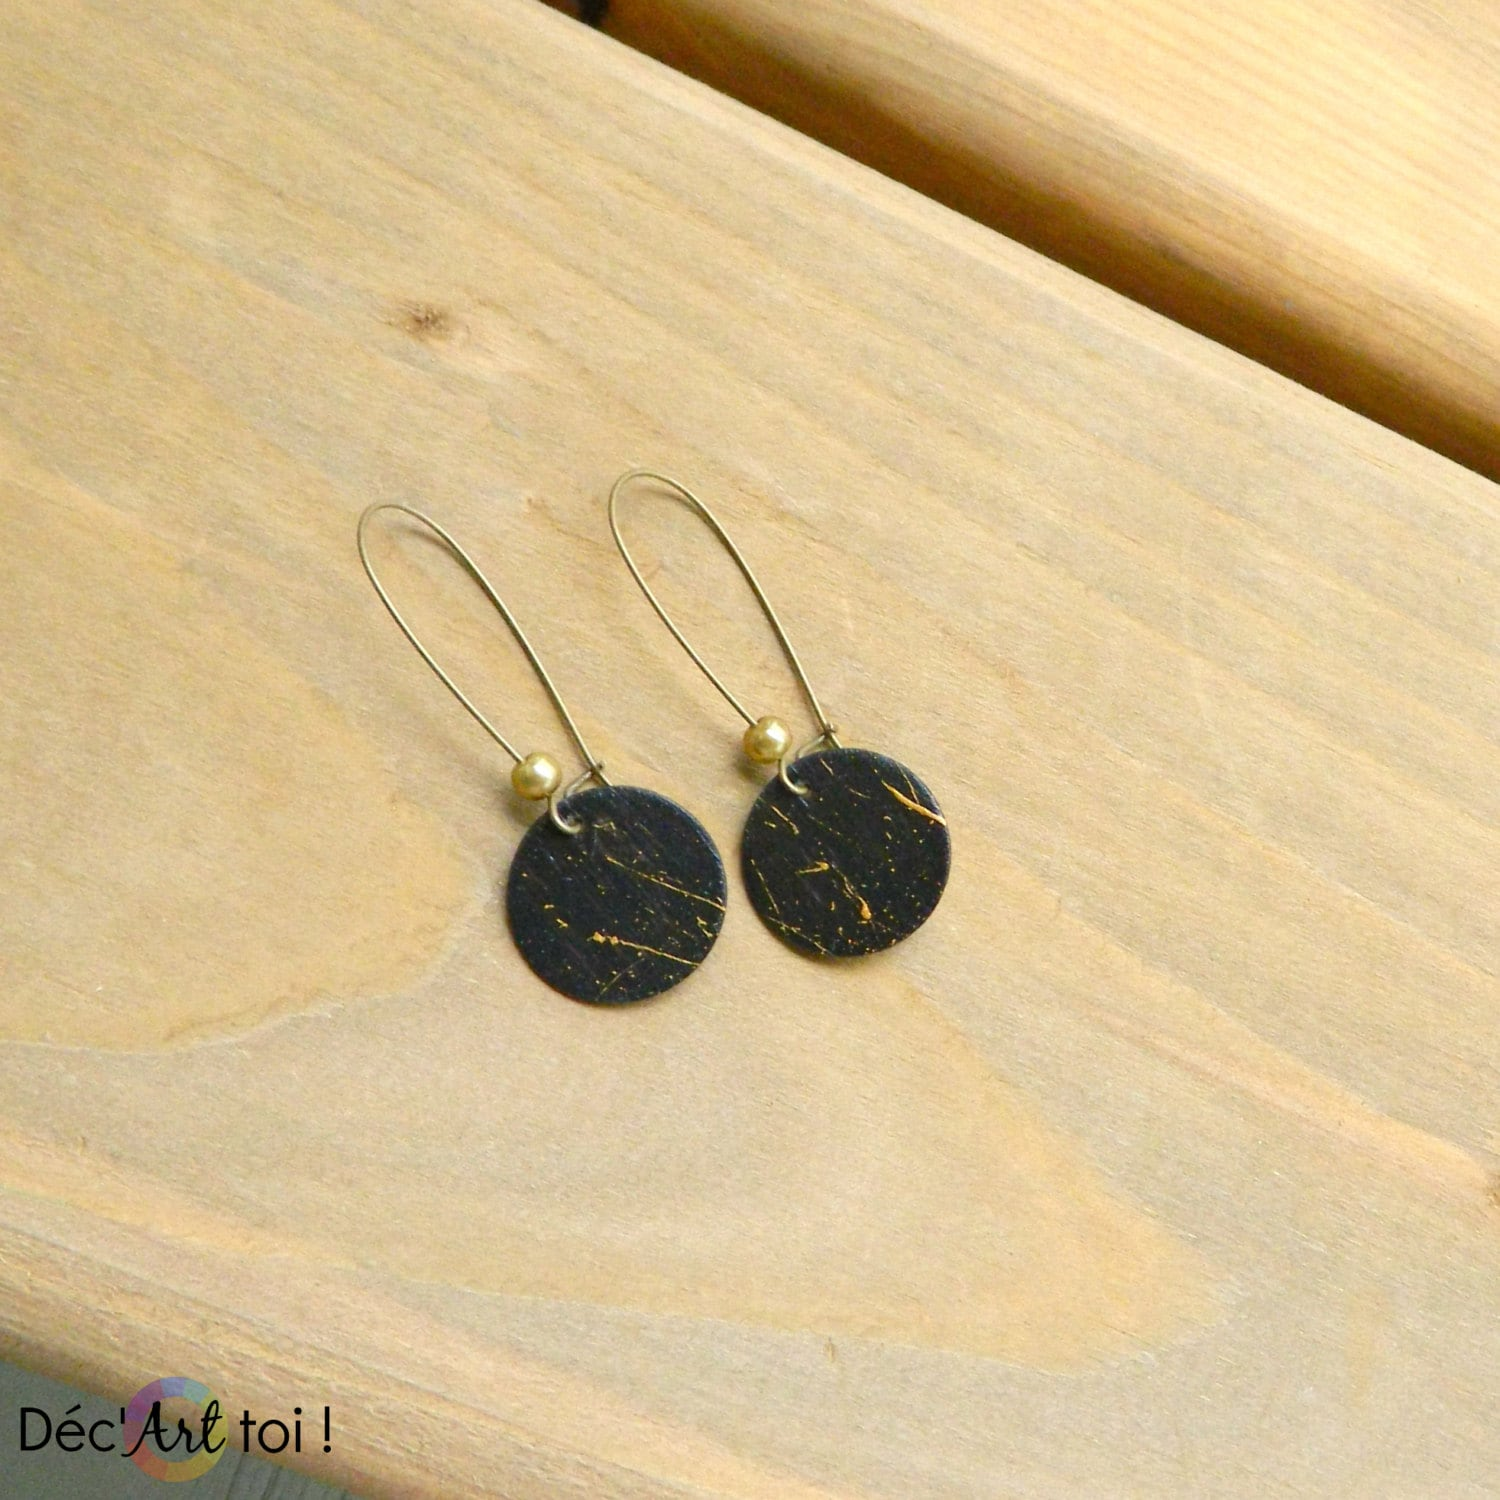 Earrings Recycled Wooden Disc Painted By Hand Wood Of Canada Black Wood Discs With Golden Abstract Art 17 Mm